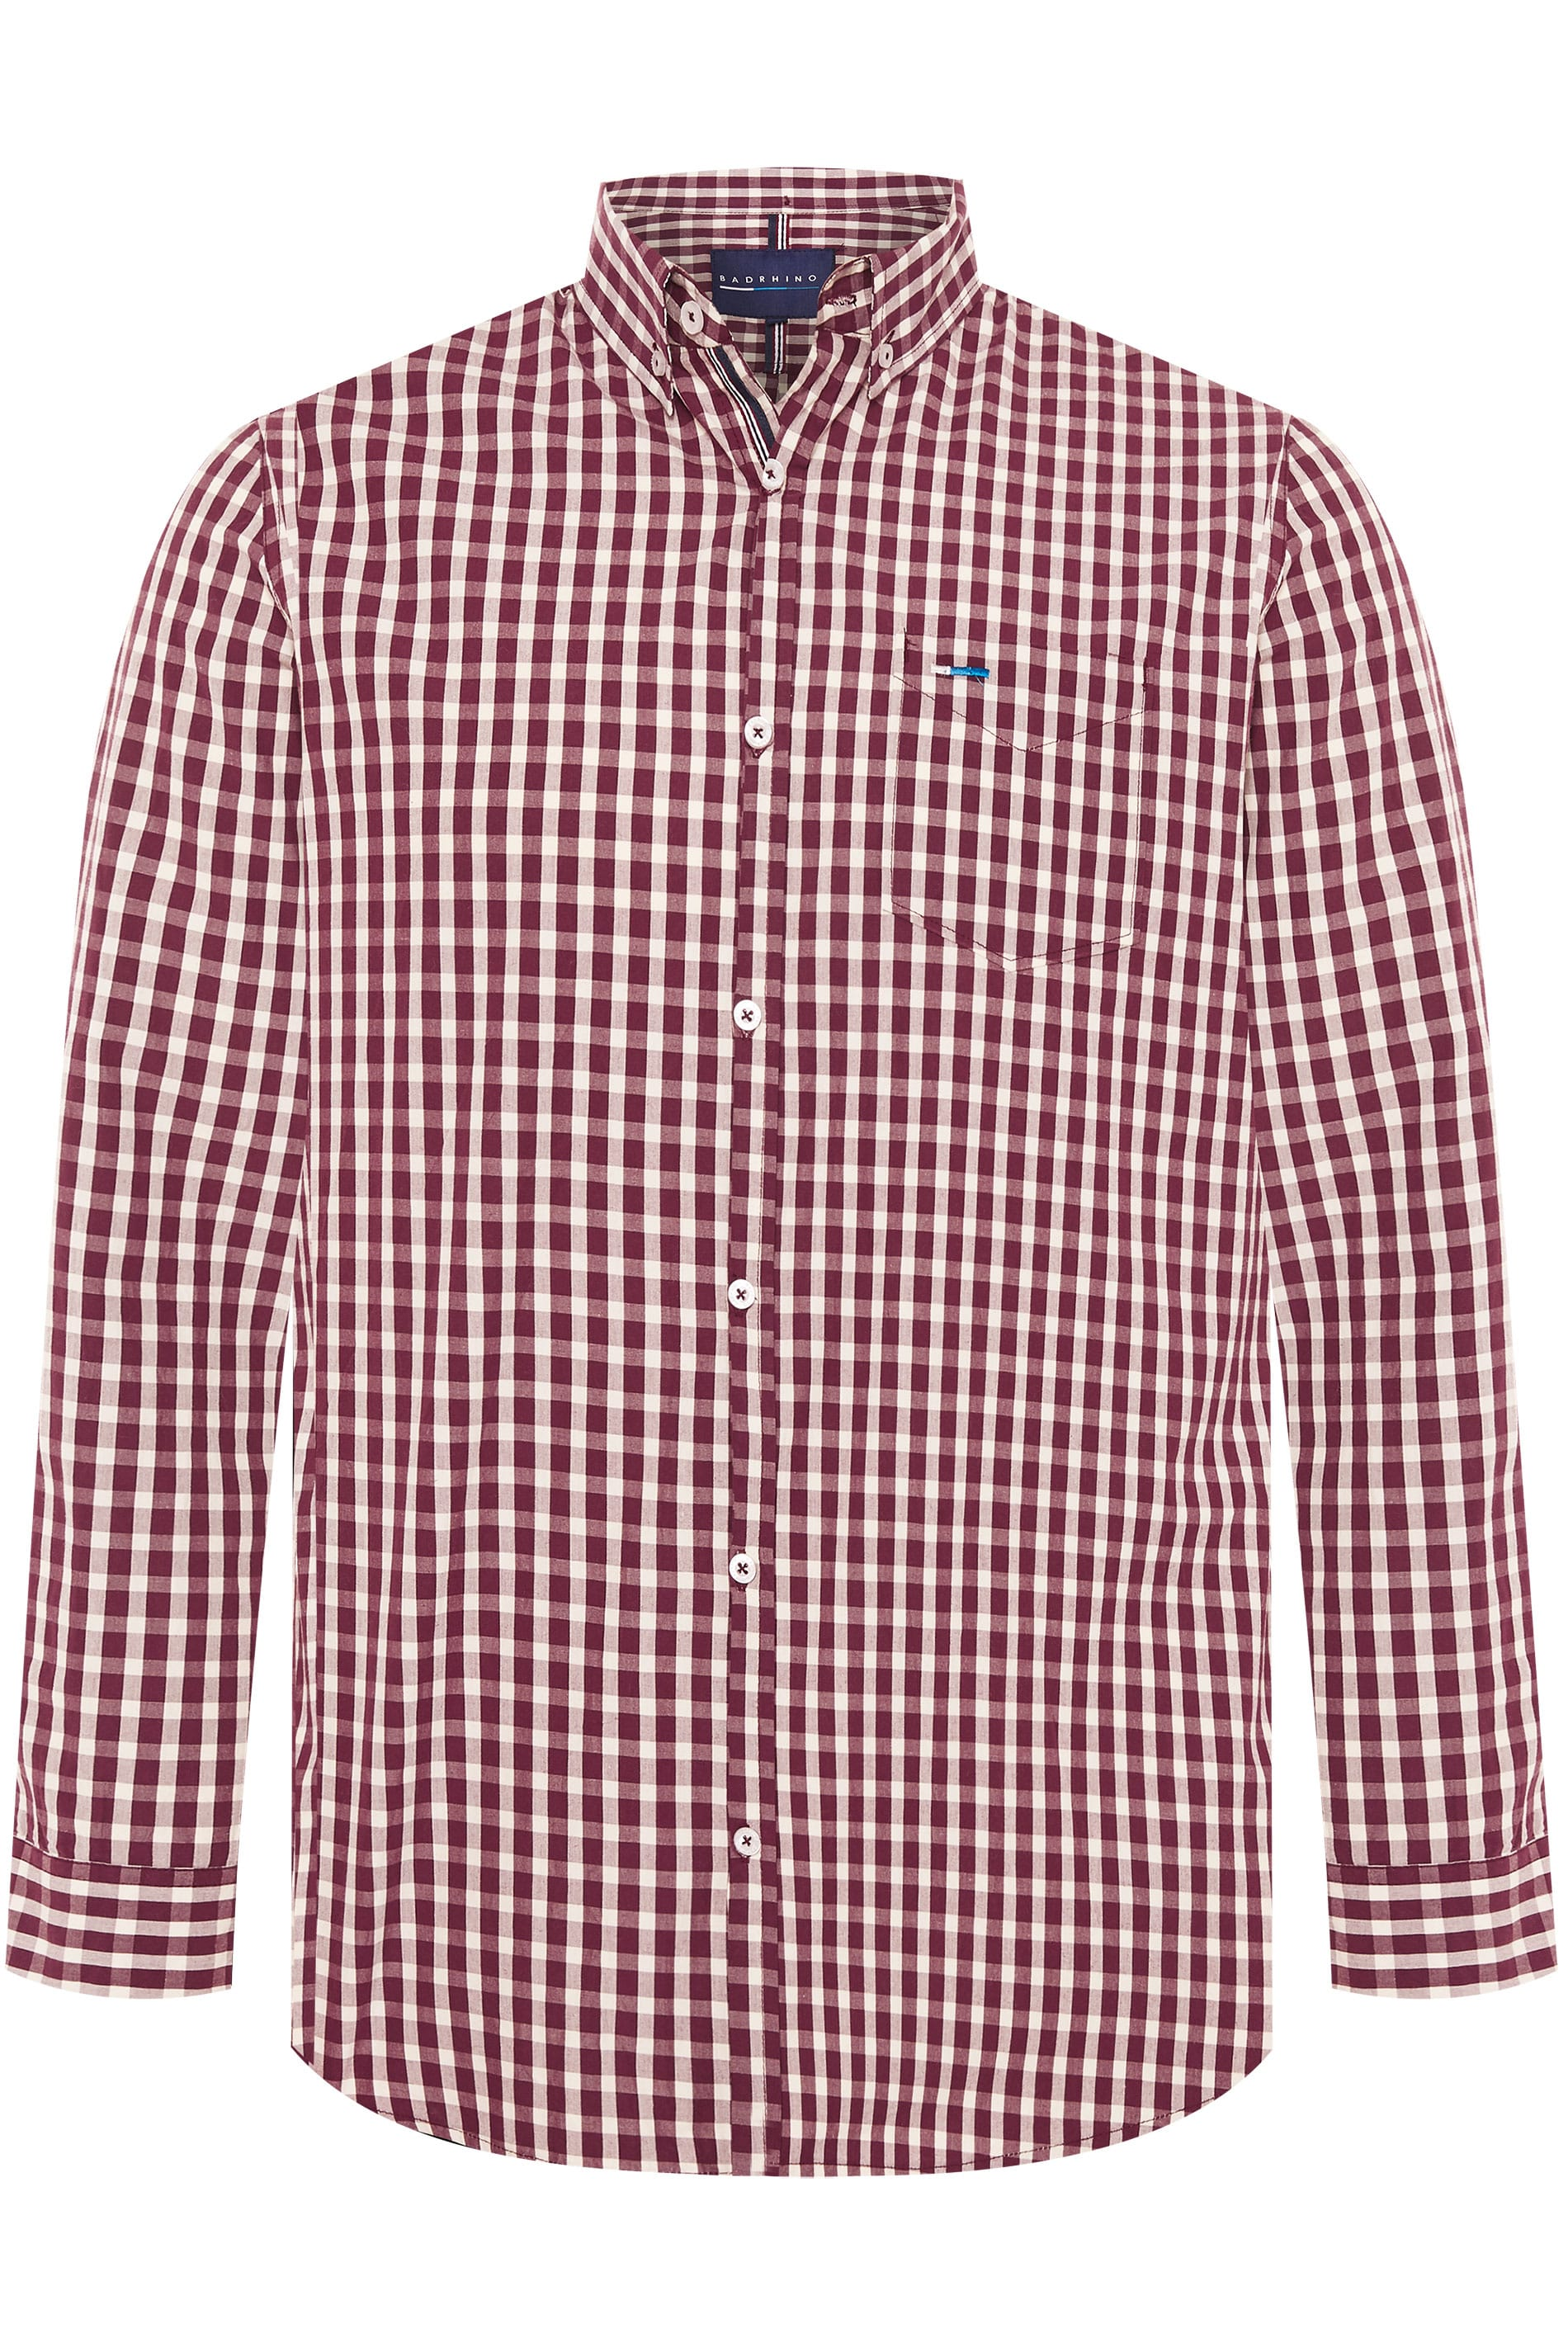 BadRhino Burgundy Gingham Check Shirt